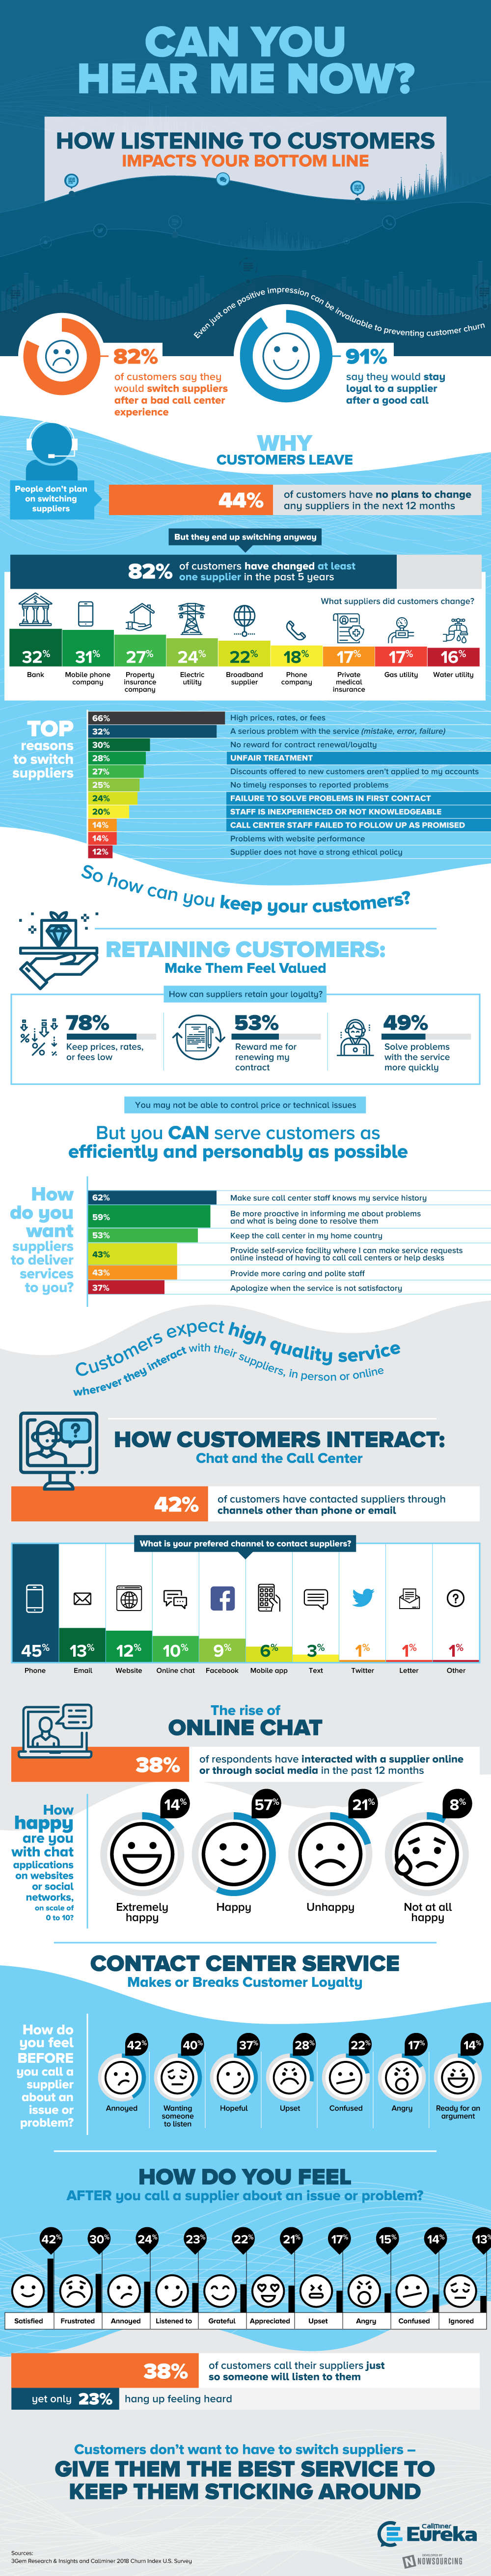 CallMiner infographic on Customer Listening.